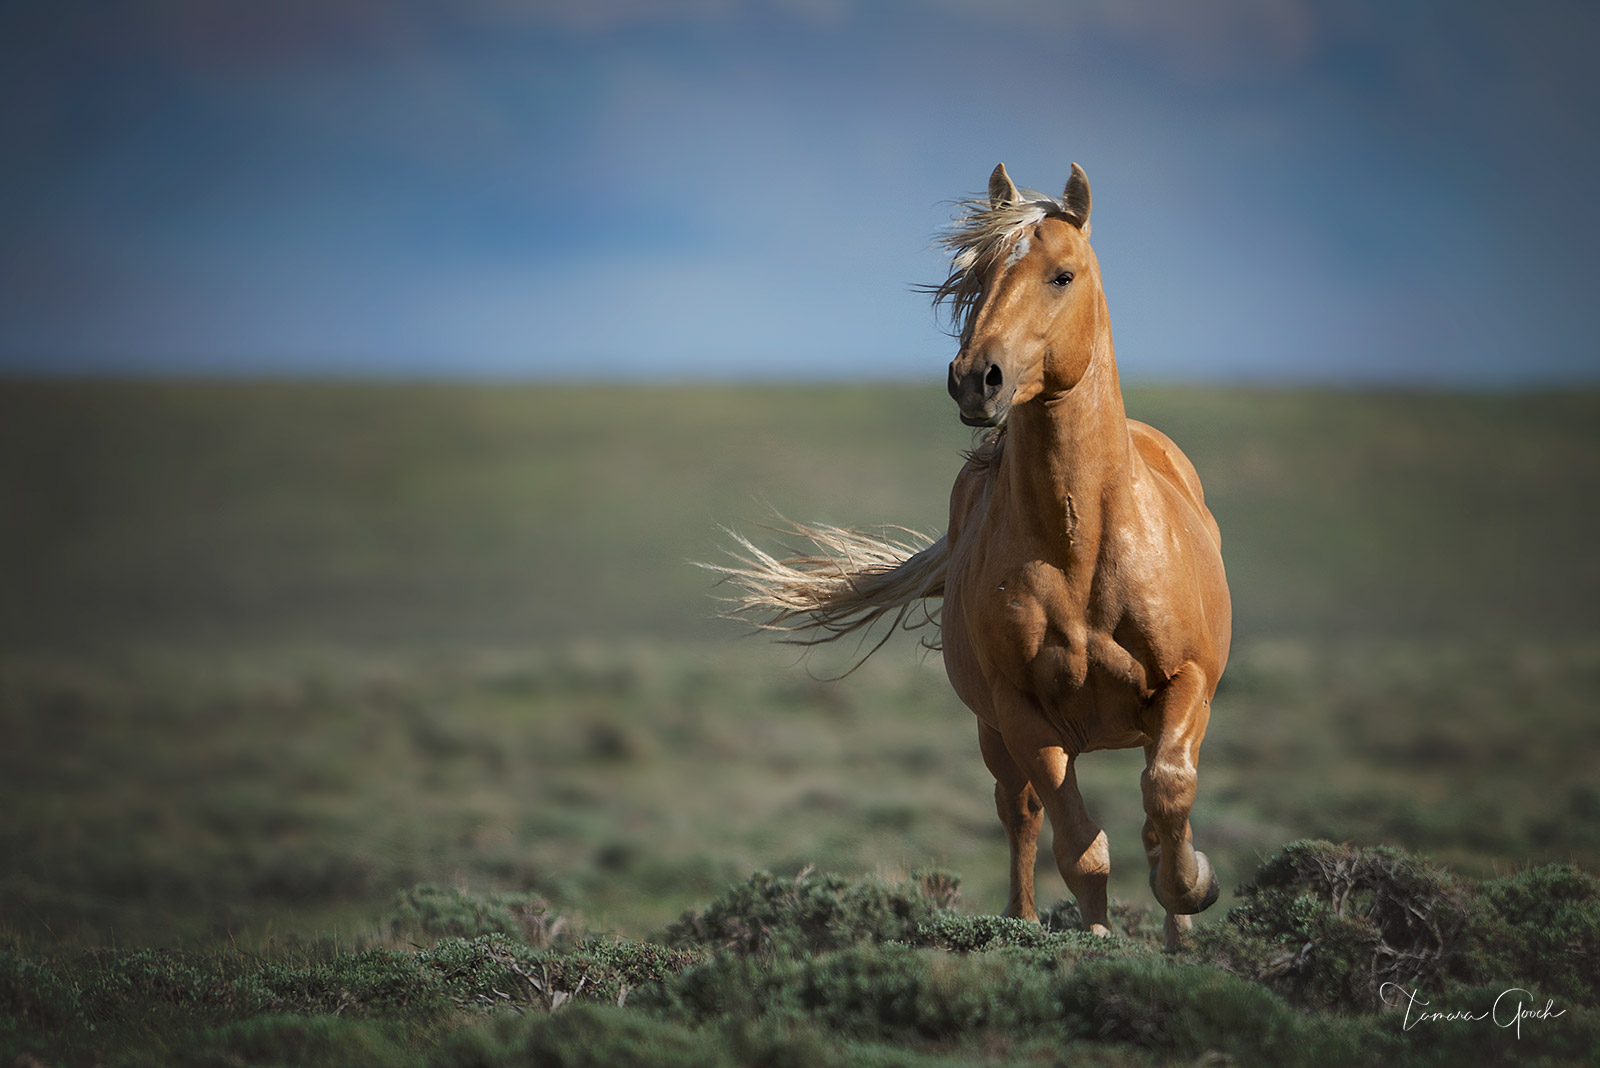 Limited Edition Print of 50 This Palomino wild horse just appeared out of now where. A horse on a mission with somewhere to be...